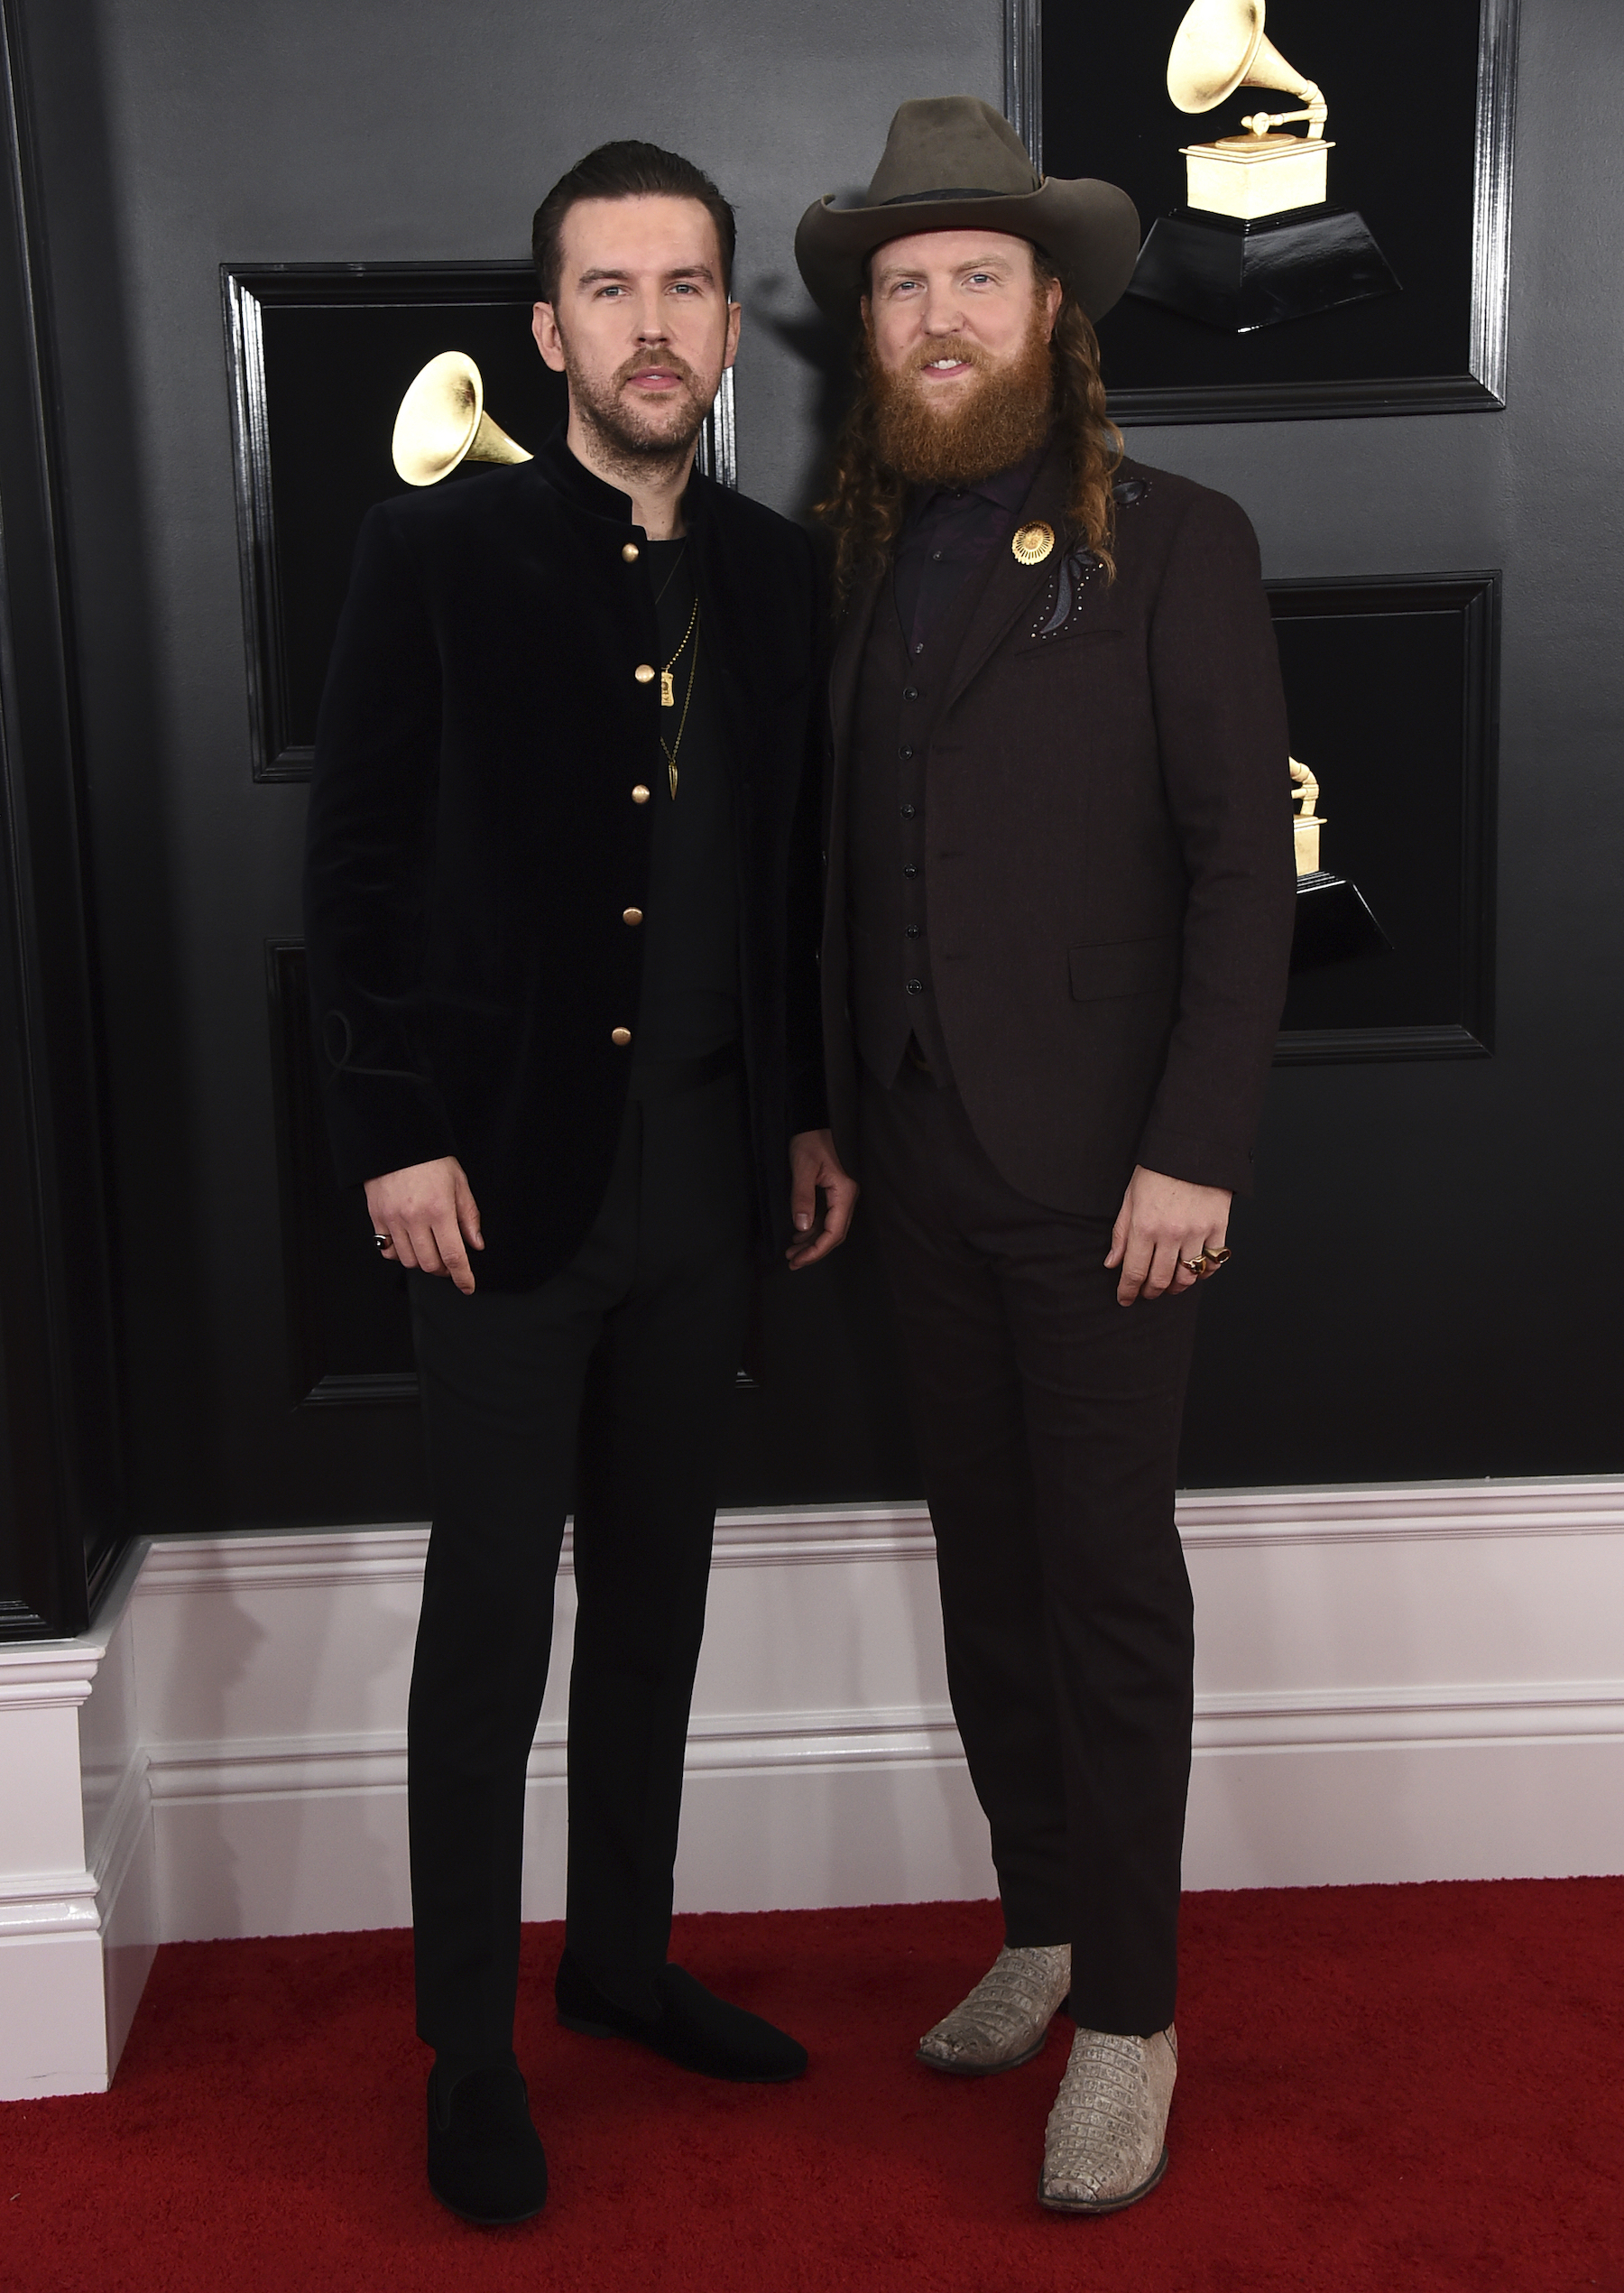 <div class='meta'><div class='origin-logo' data-origin='AP'></div><span class='caption-text' data-credit='Jordan Strauss/Invision/AP'>T.J. Osborne, left, and John Osborne of Brothers Osborne arrive at the 61st annual Grammy Awards at the Staples Center on Sunday, Feb. 10, 2019, in Los Angeles.</span></div>